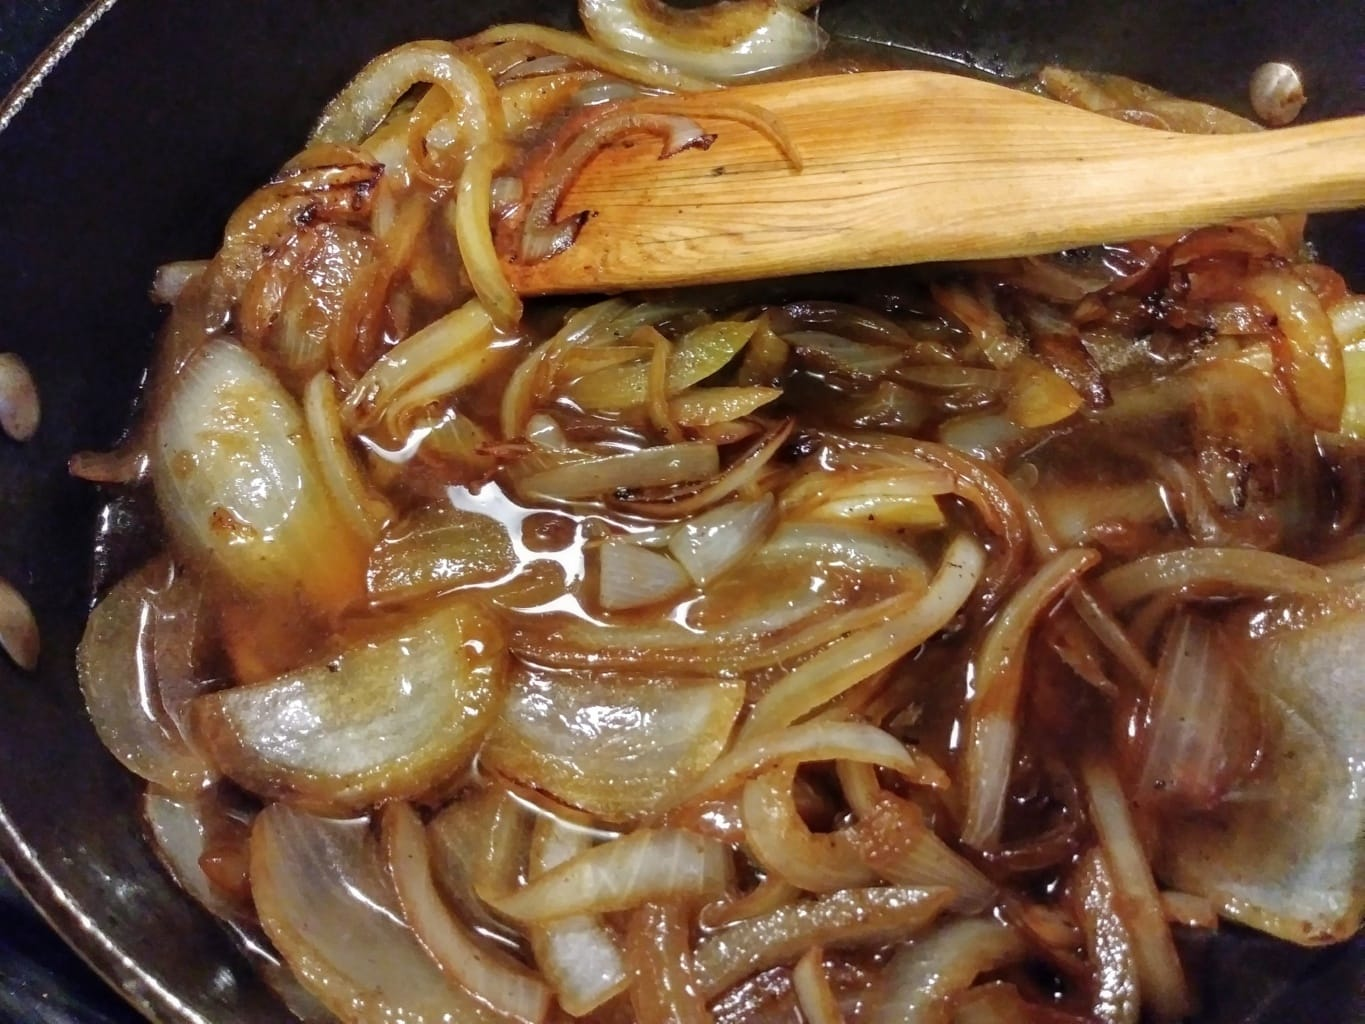 Onions and au jus ready